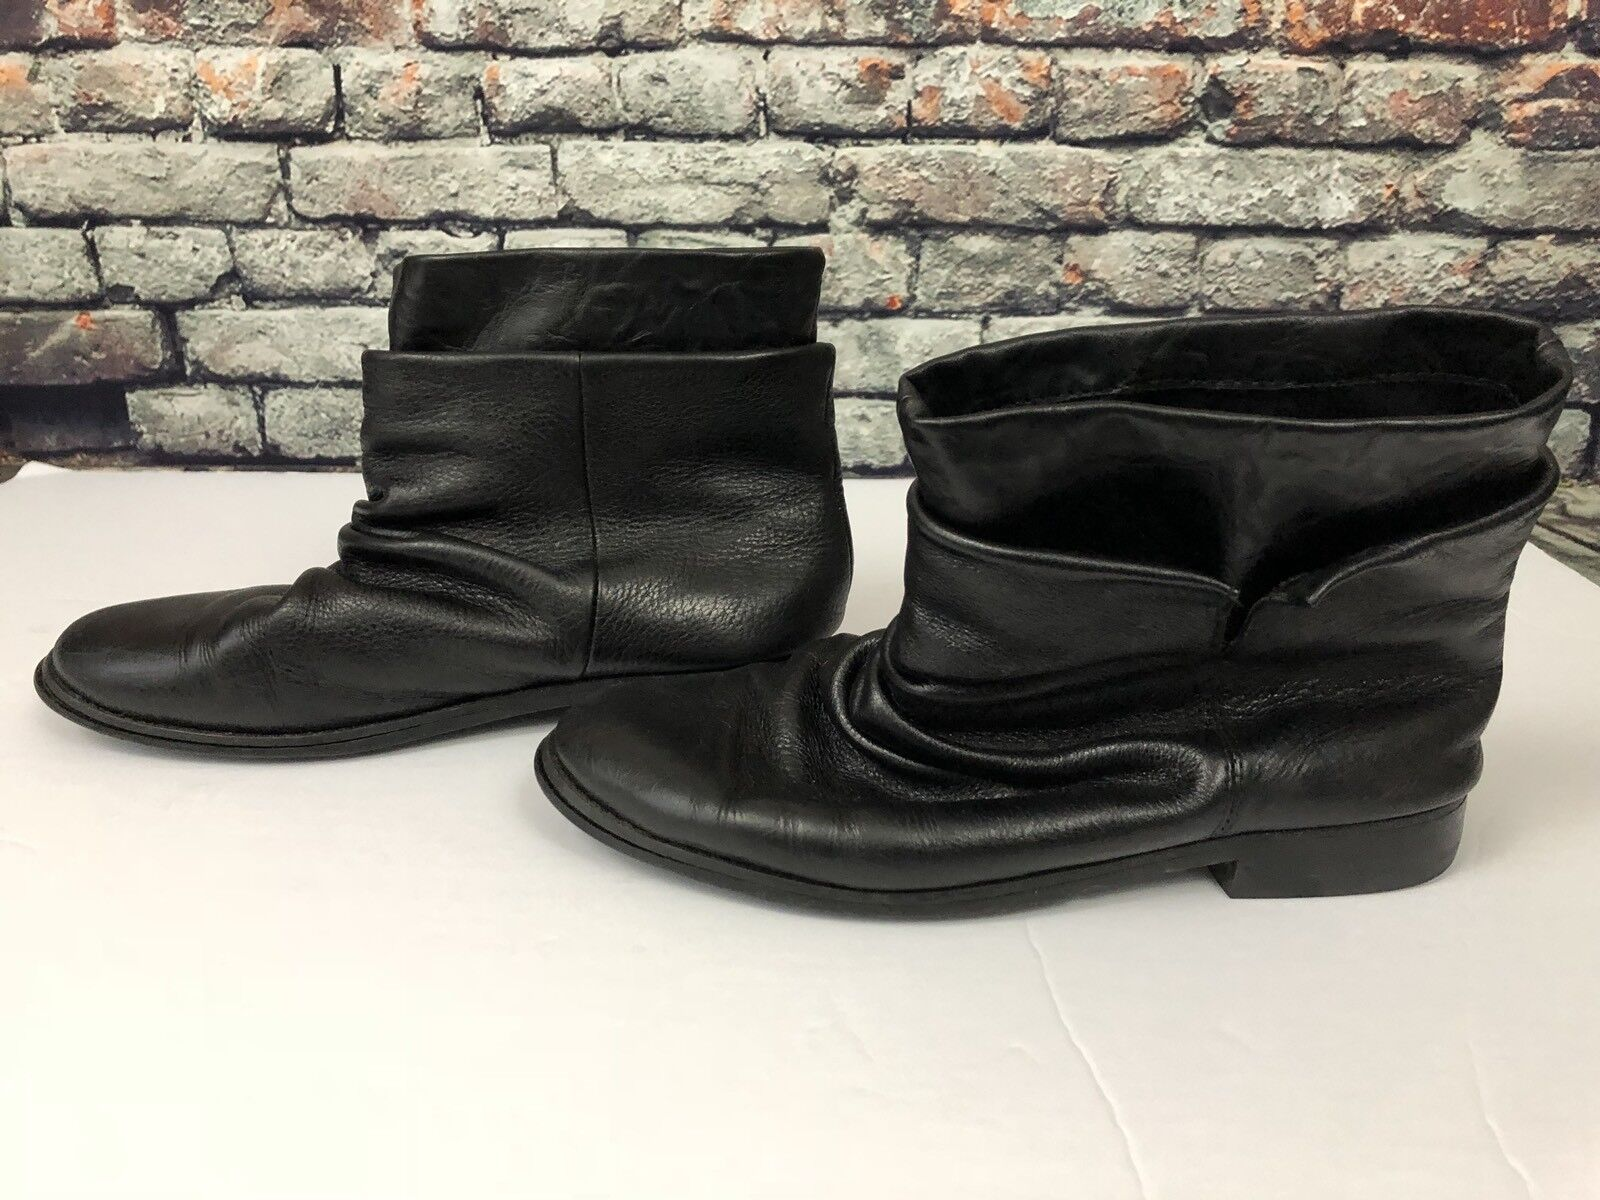 Tout a Coup Black Leather Booties Boots Size 37